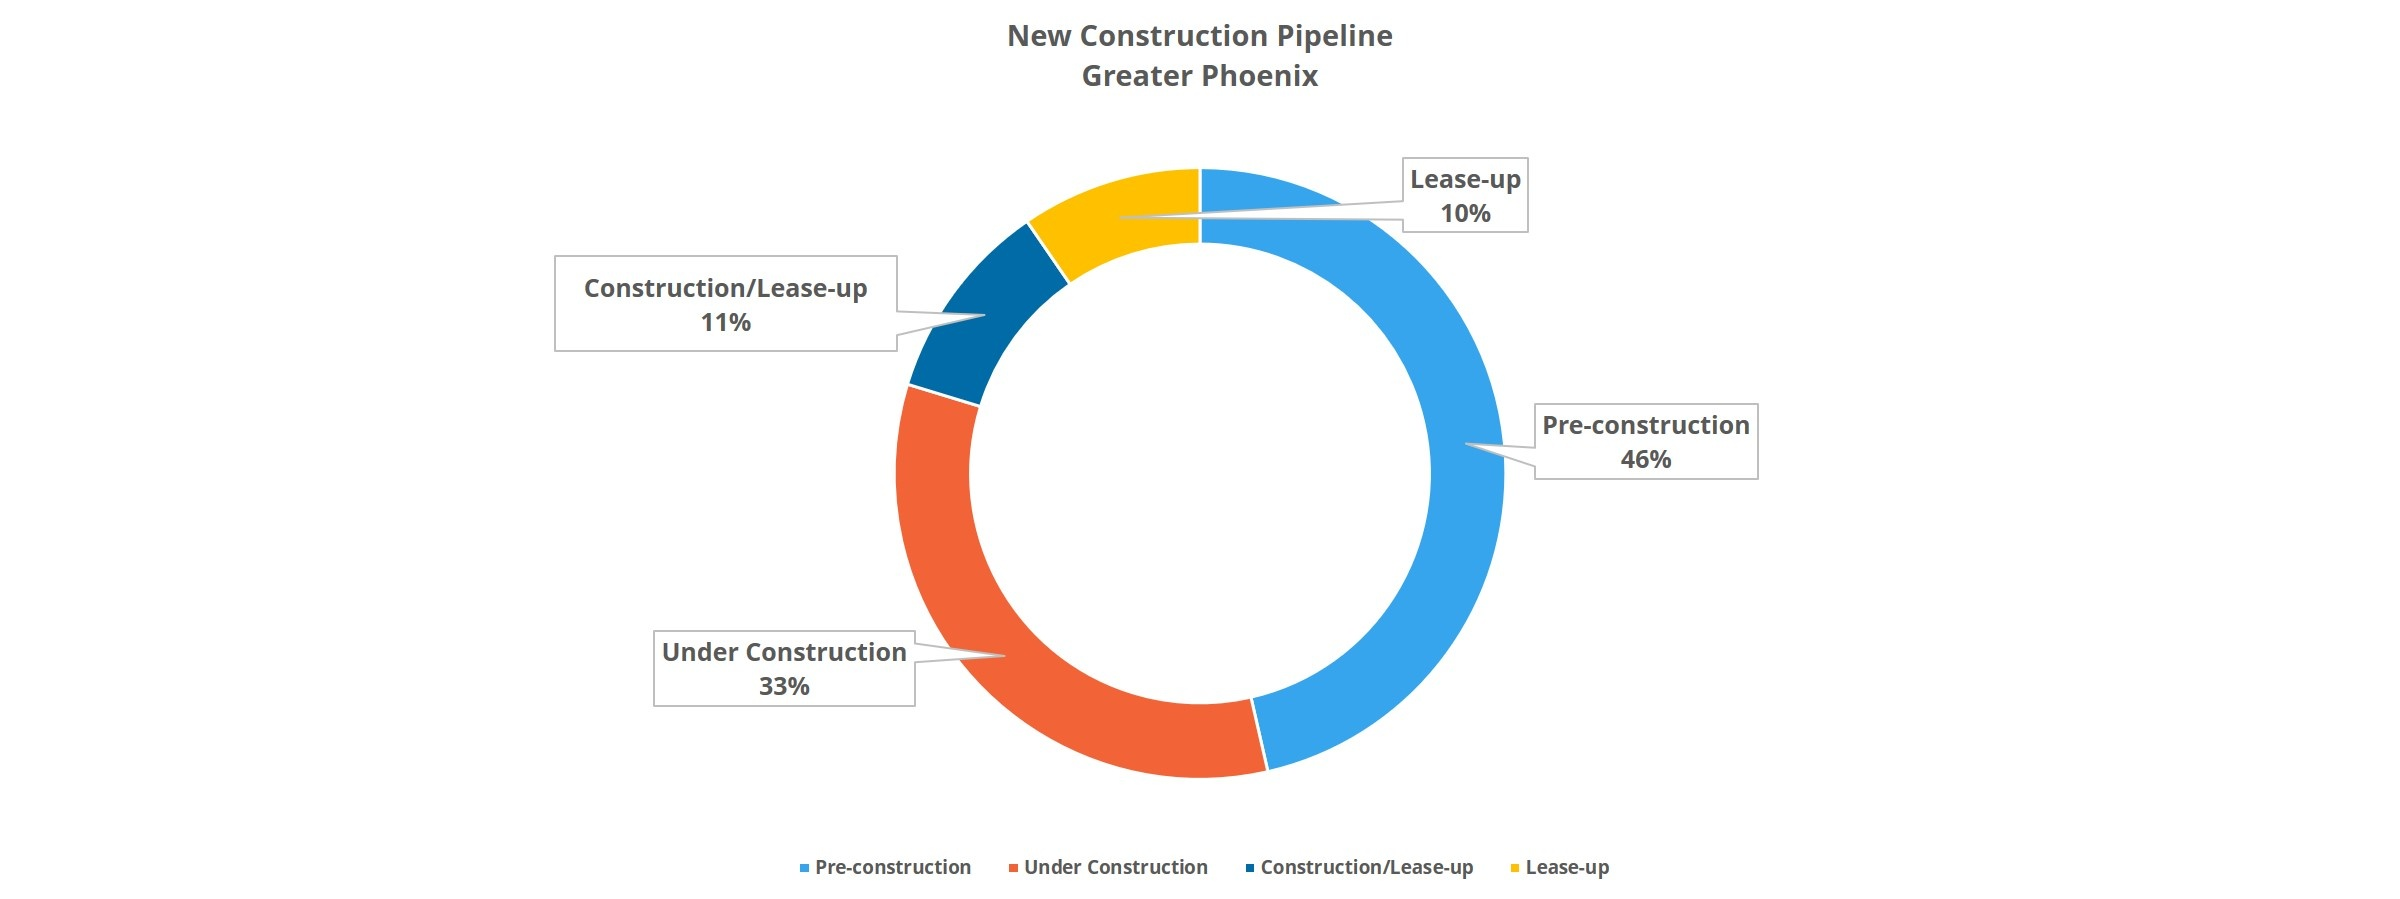 New Construction Pipeline in Phoenix